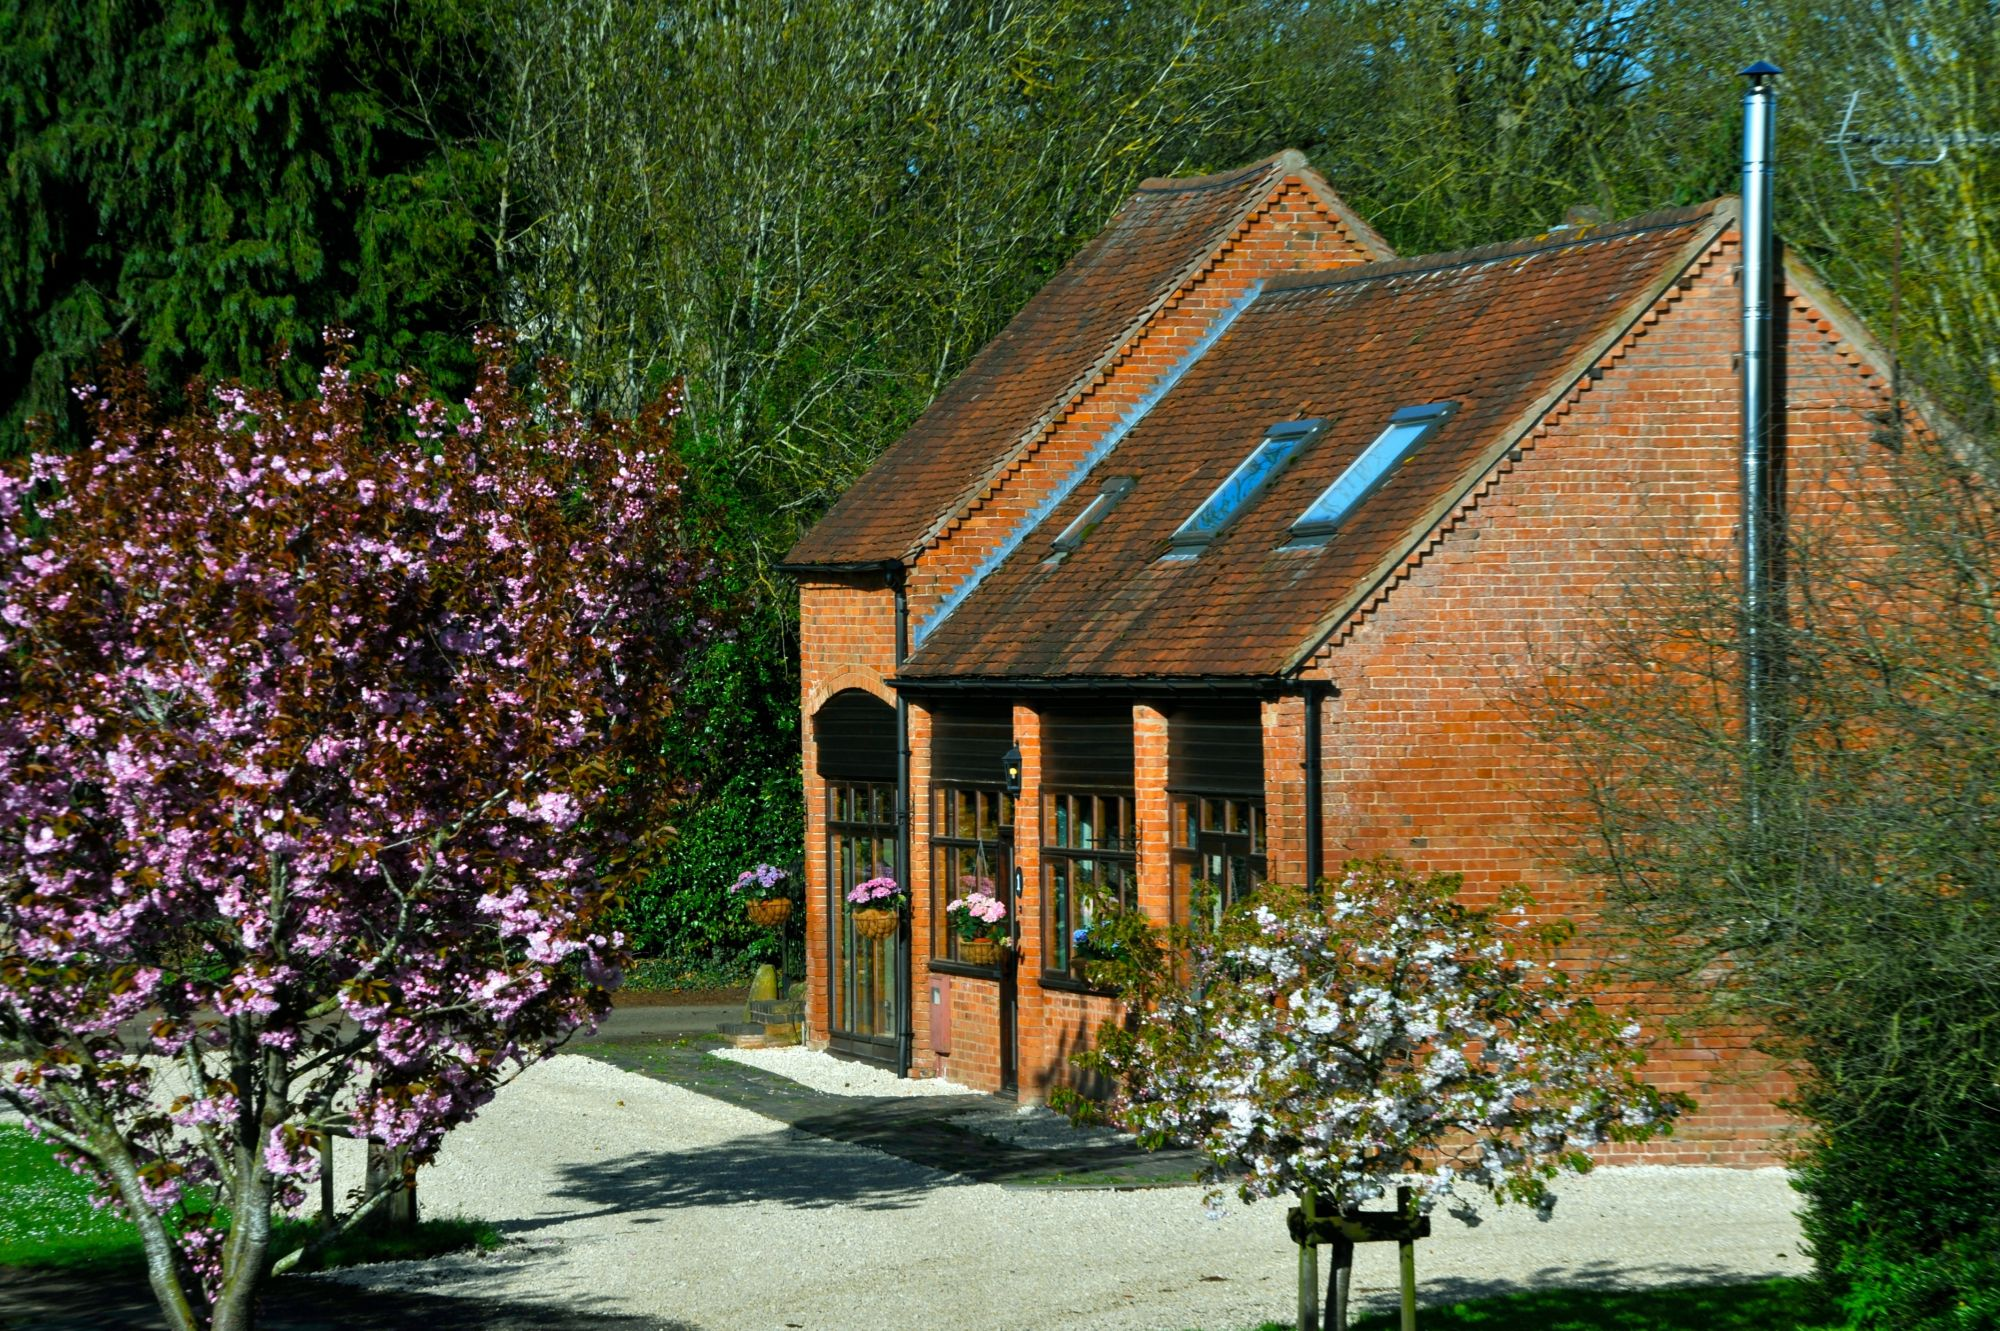 copper-pot-barn-blossom.jpg